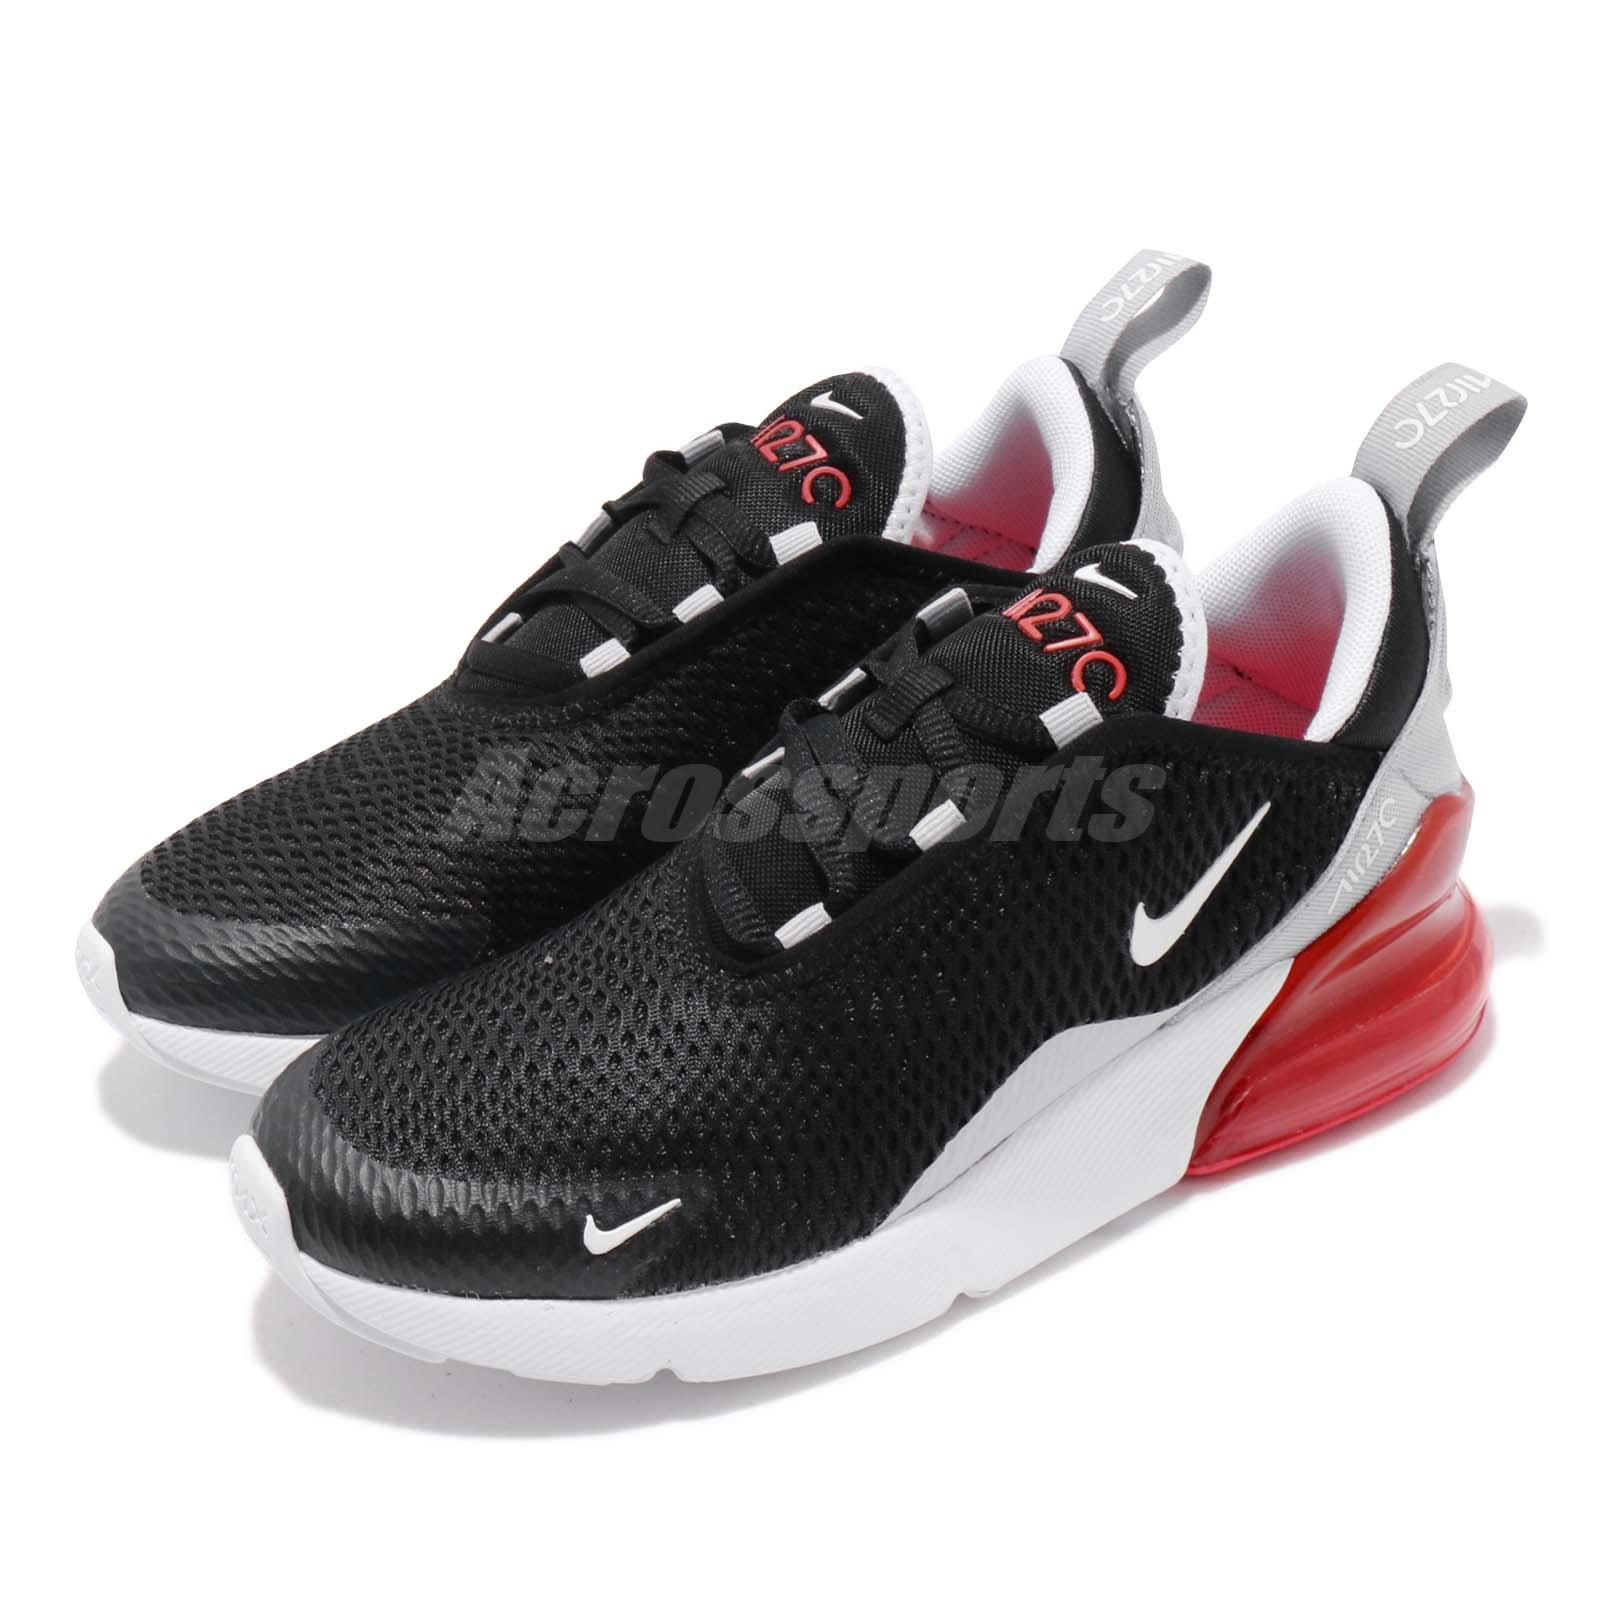 2ec5d157b49c Details about Nike Air Max 270 GS Black White Red Kids Womens Running Shoes  943345-013